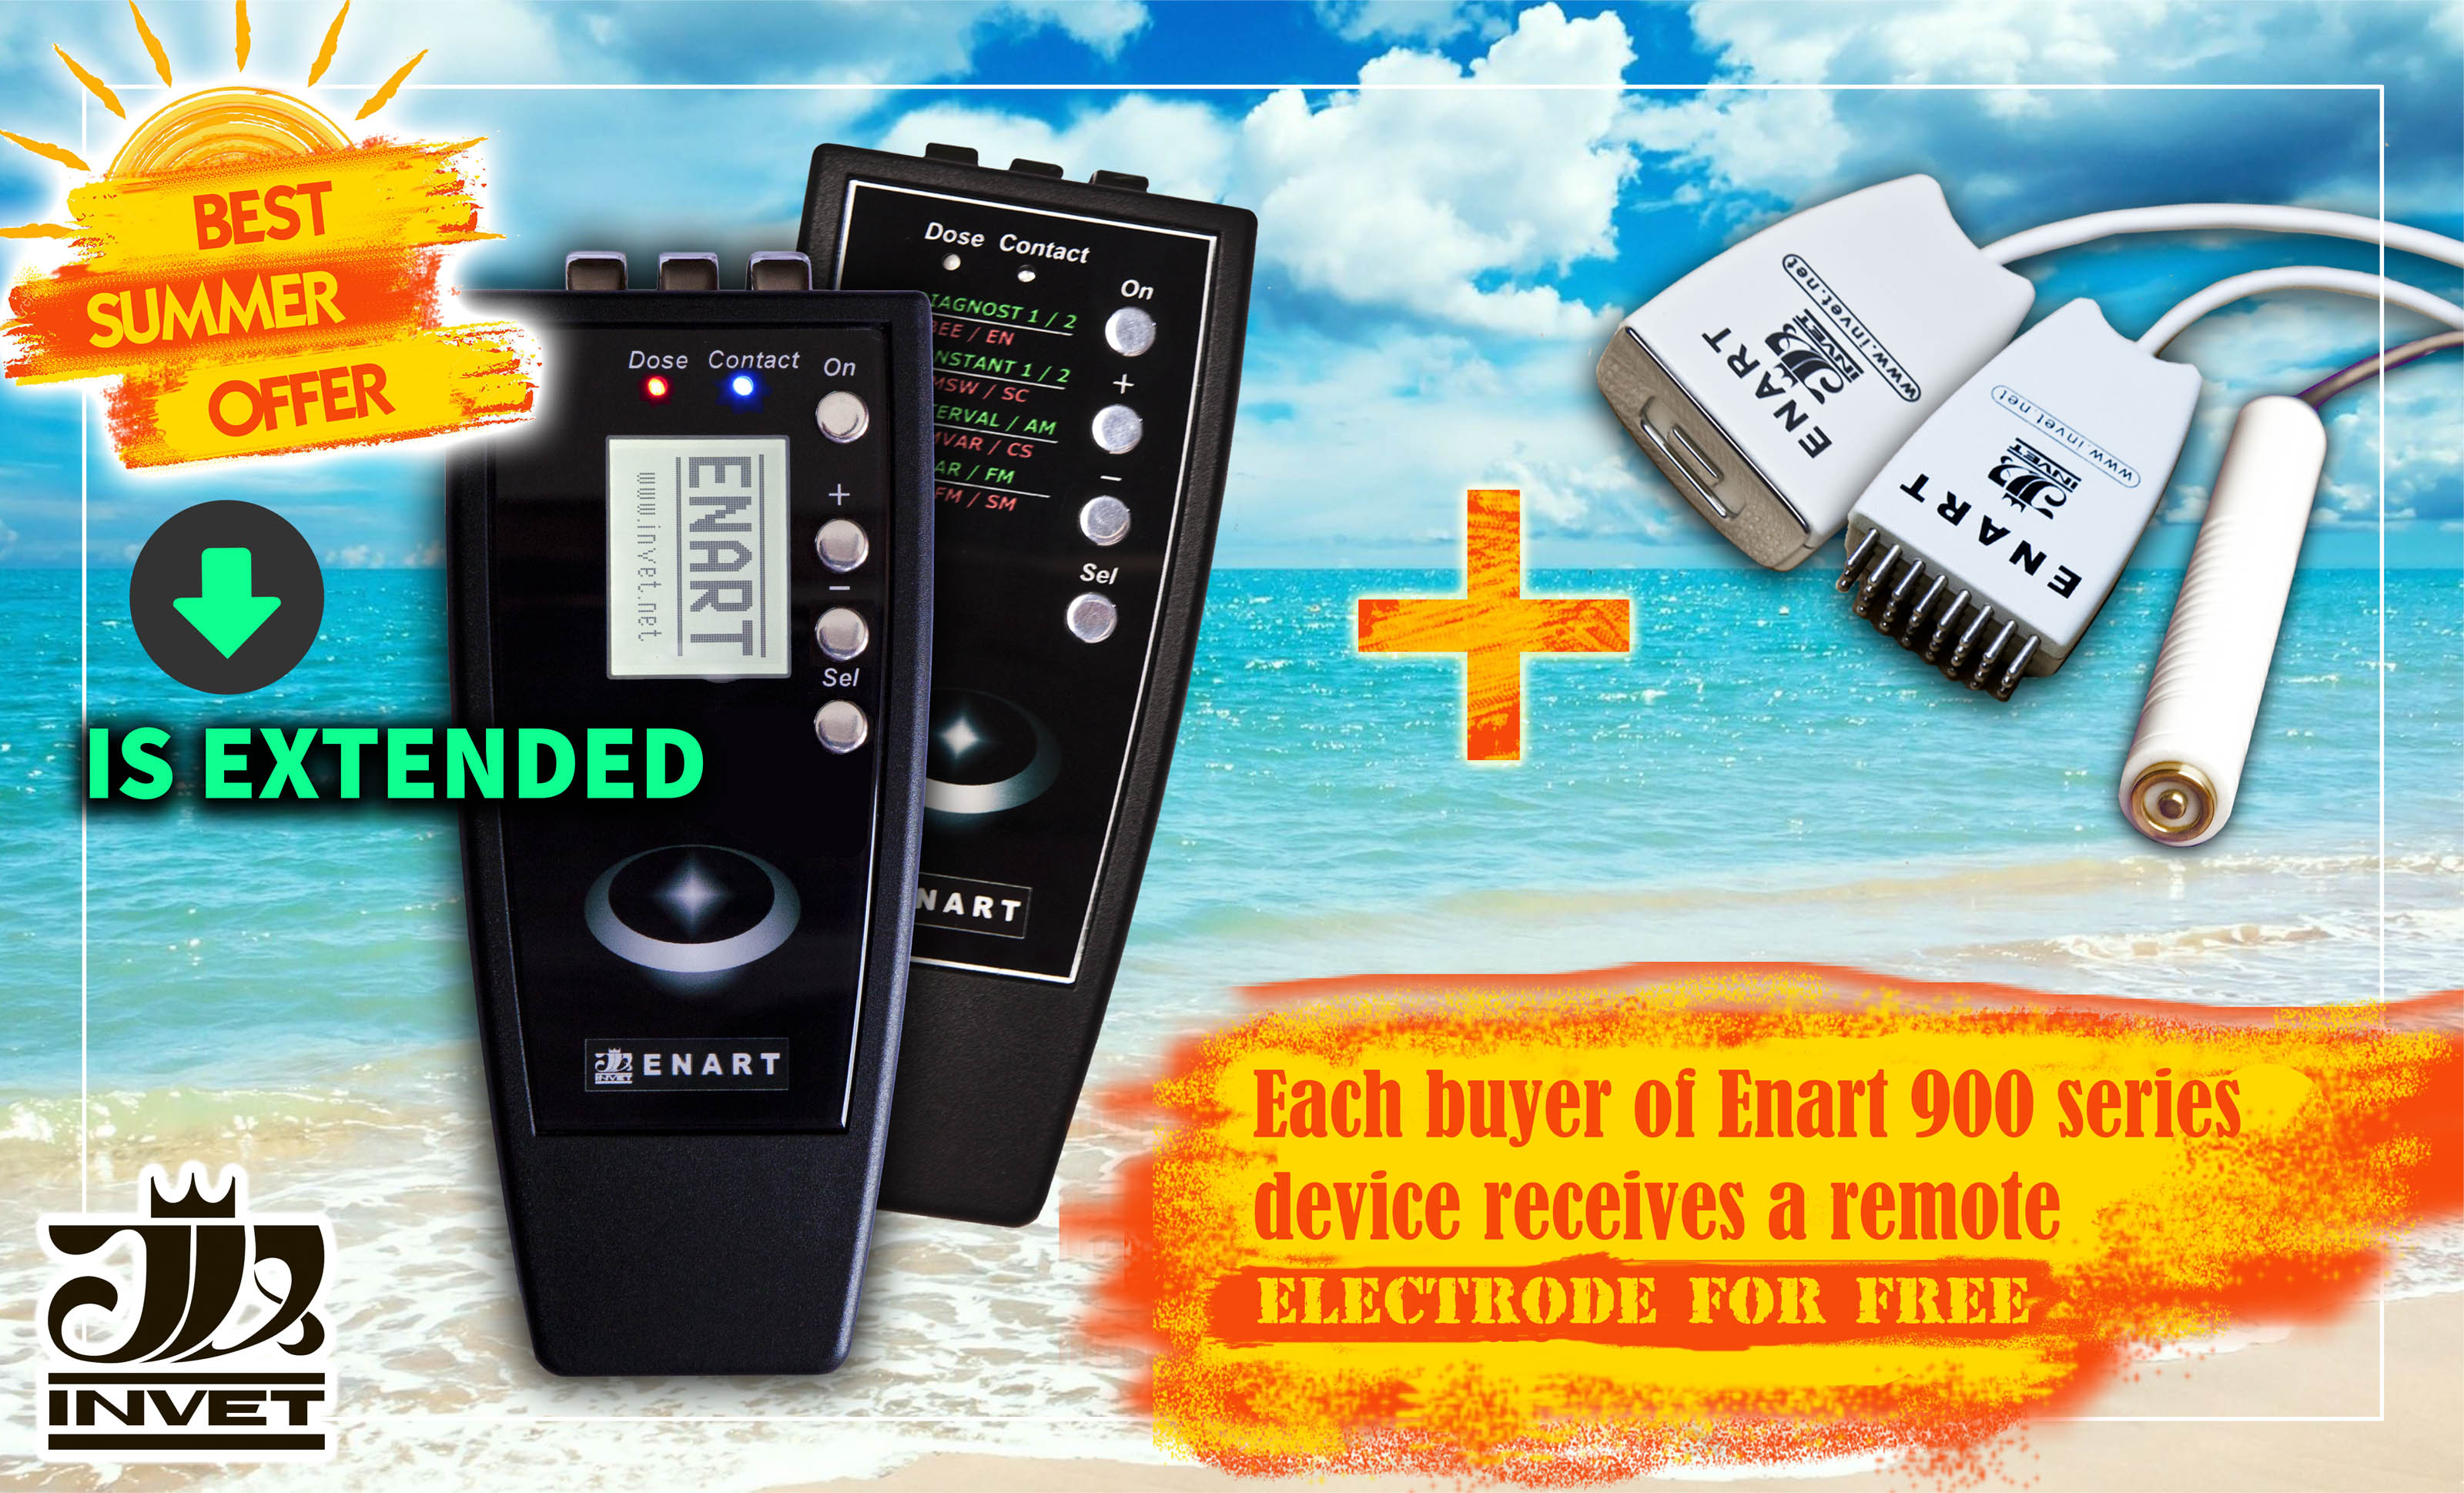 ENART Best Summer Offer